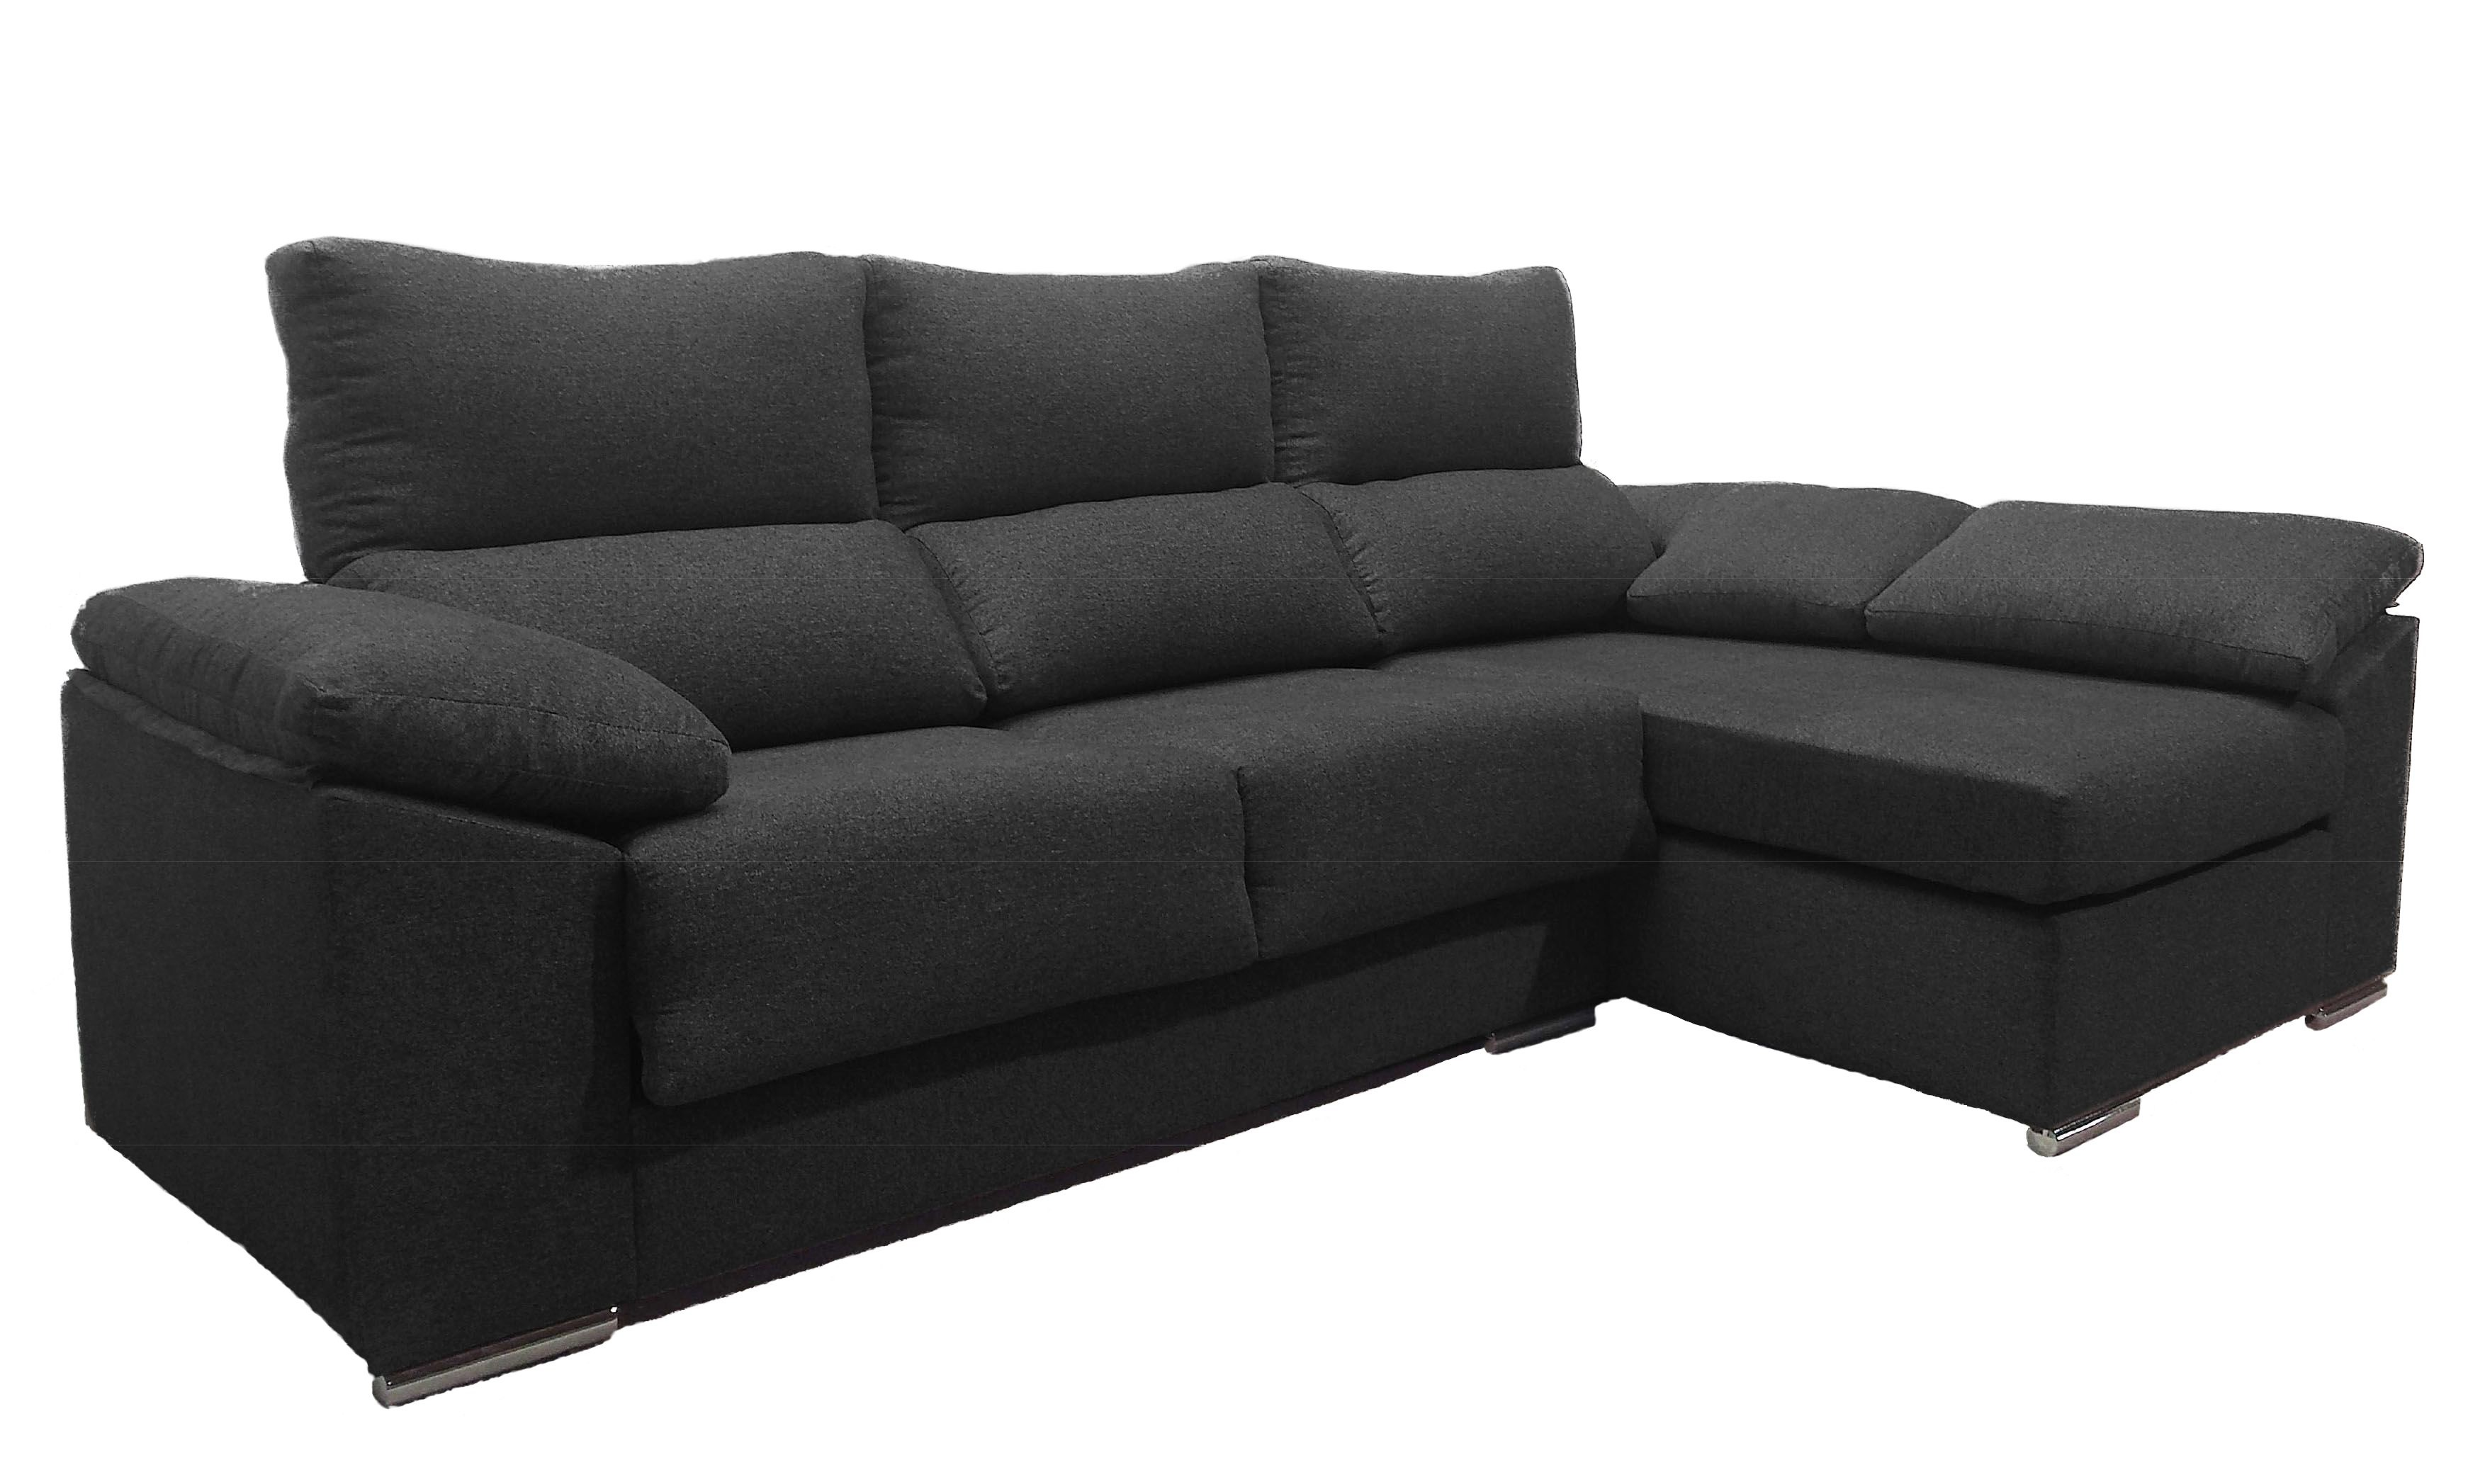 Sofa rinconera con chaise longue ideas de disenos for Sofas nuevos baratos